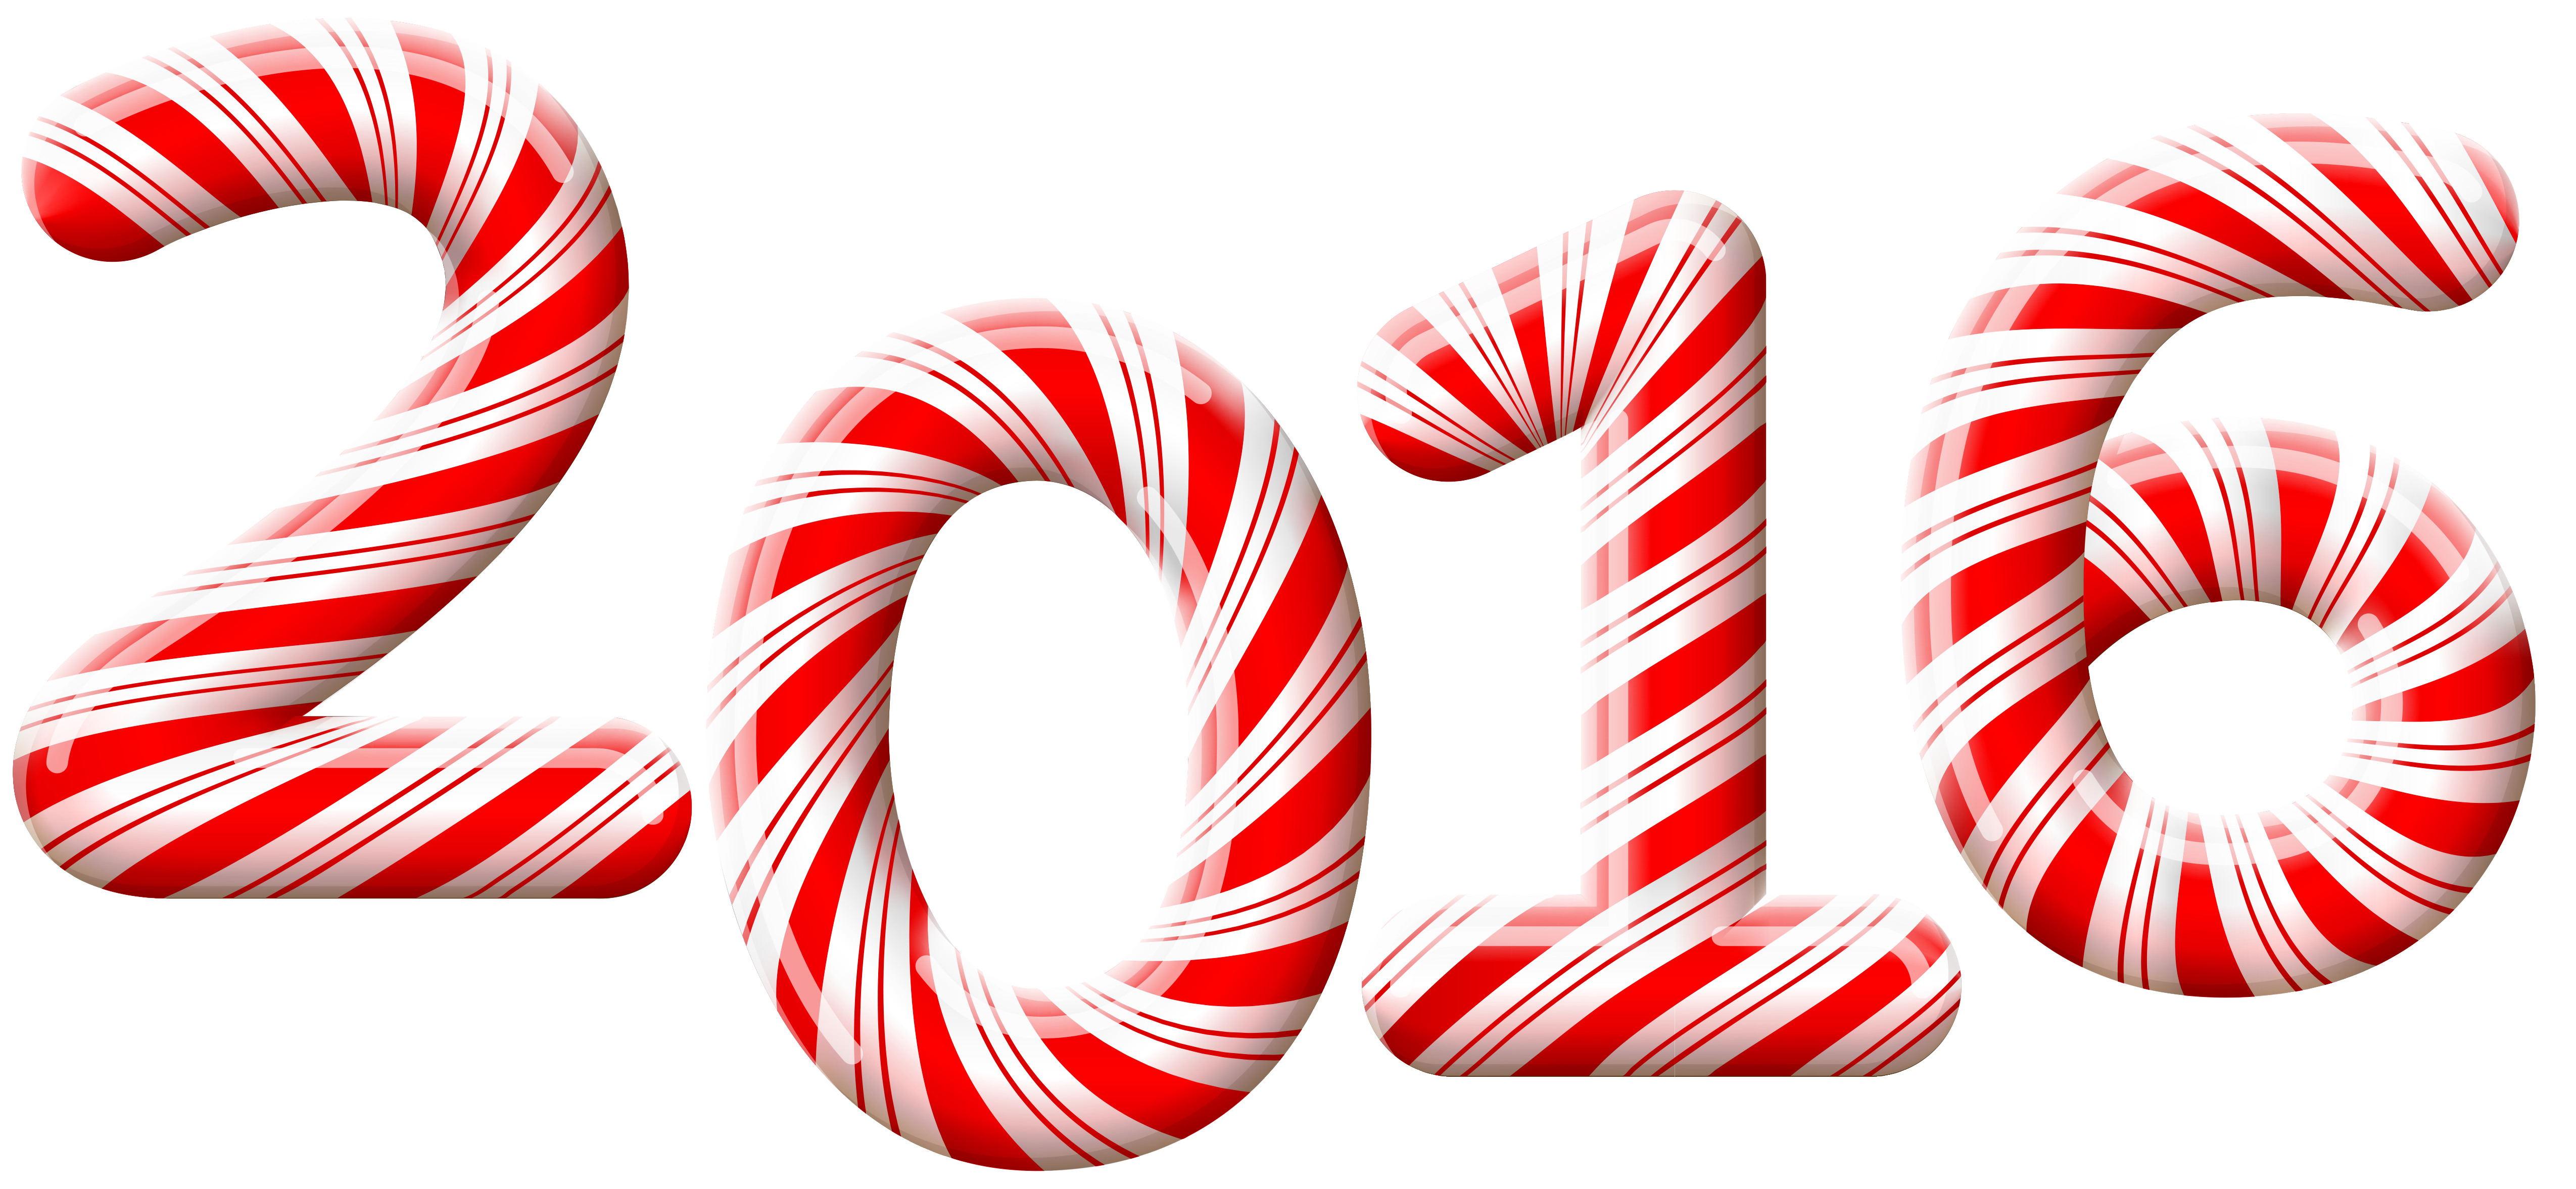 2016 Candy Cane Png Clip Art Image Christmas Scrapbook Christmas Candy Christmas Candy Cane